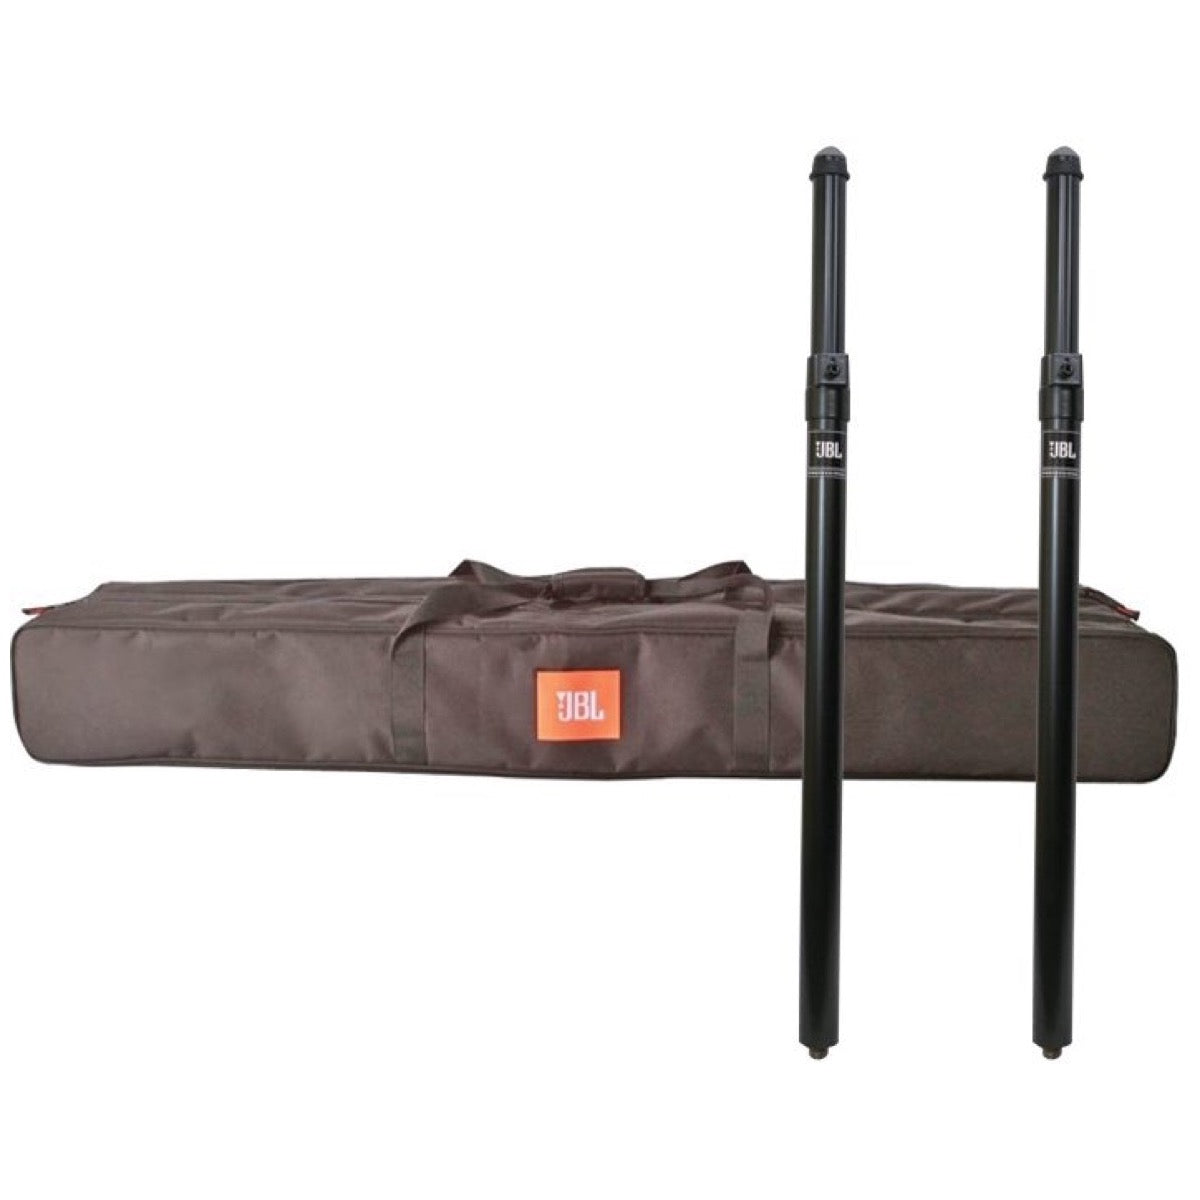 JBL POLE-GA Gas Assist Adjustable Speaker Pole, Pair, with JBL Deluxe Speaker Pole Stand Bag